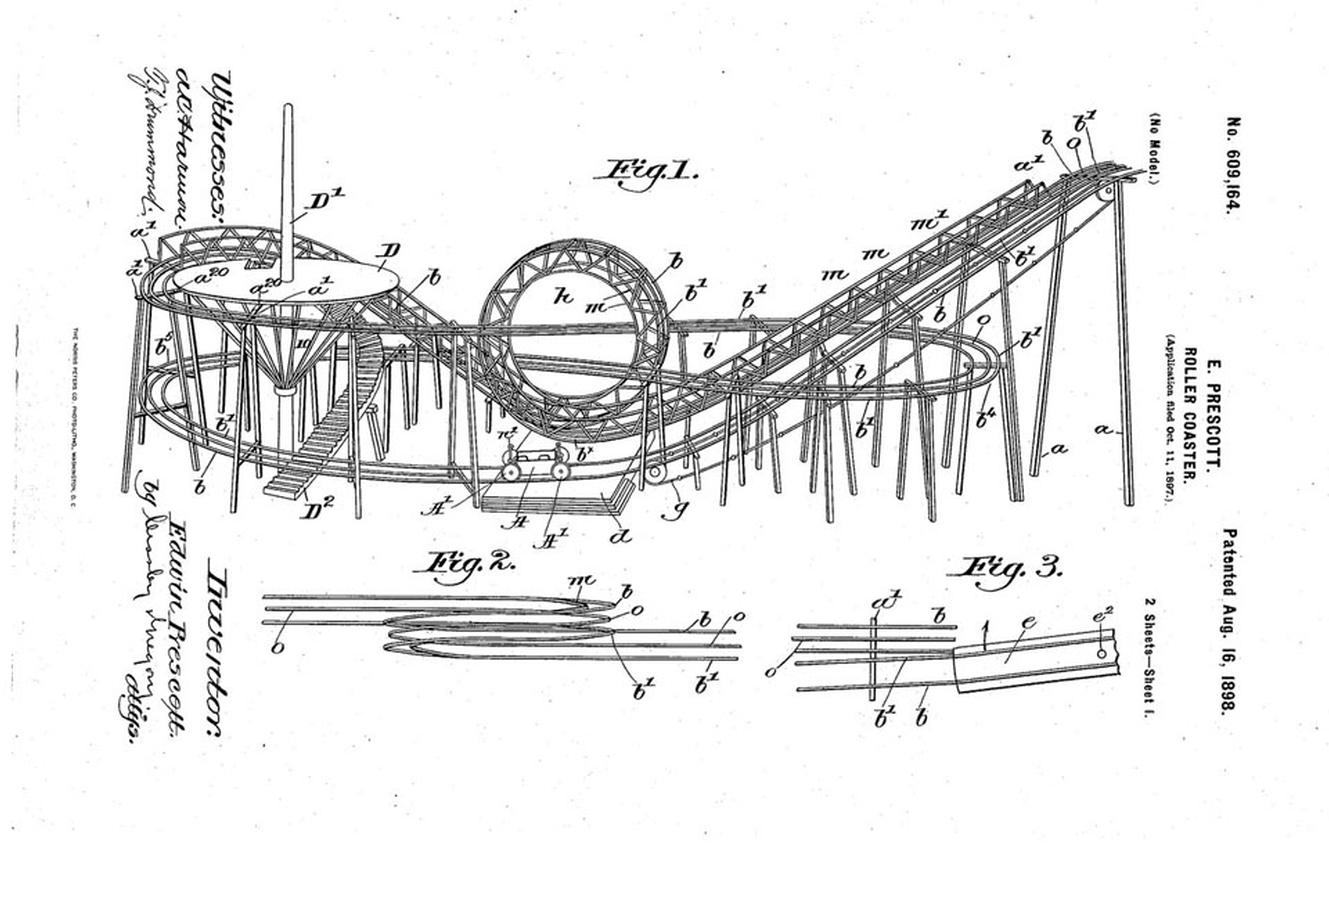 Roller Coaster Parts Diagram Pictures To Pin